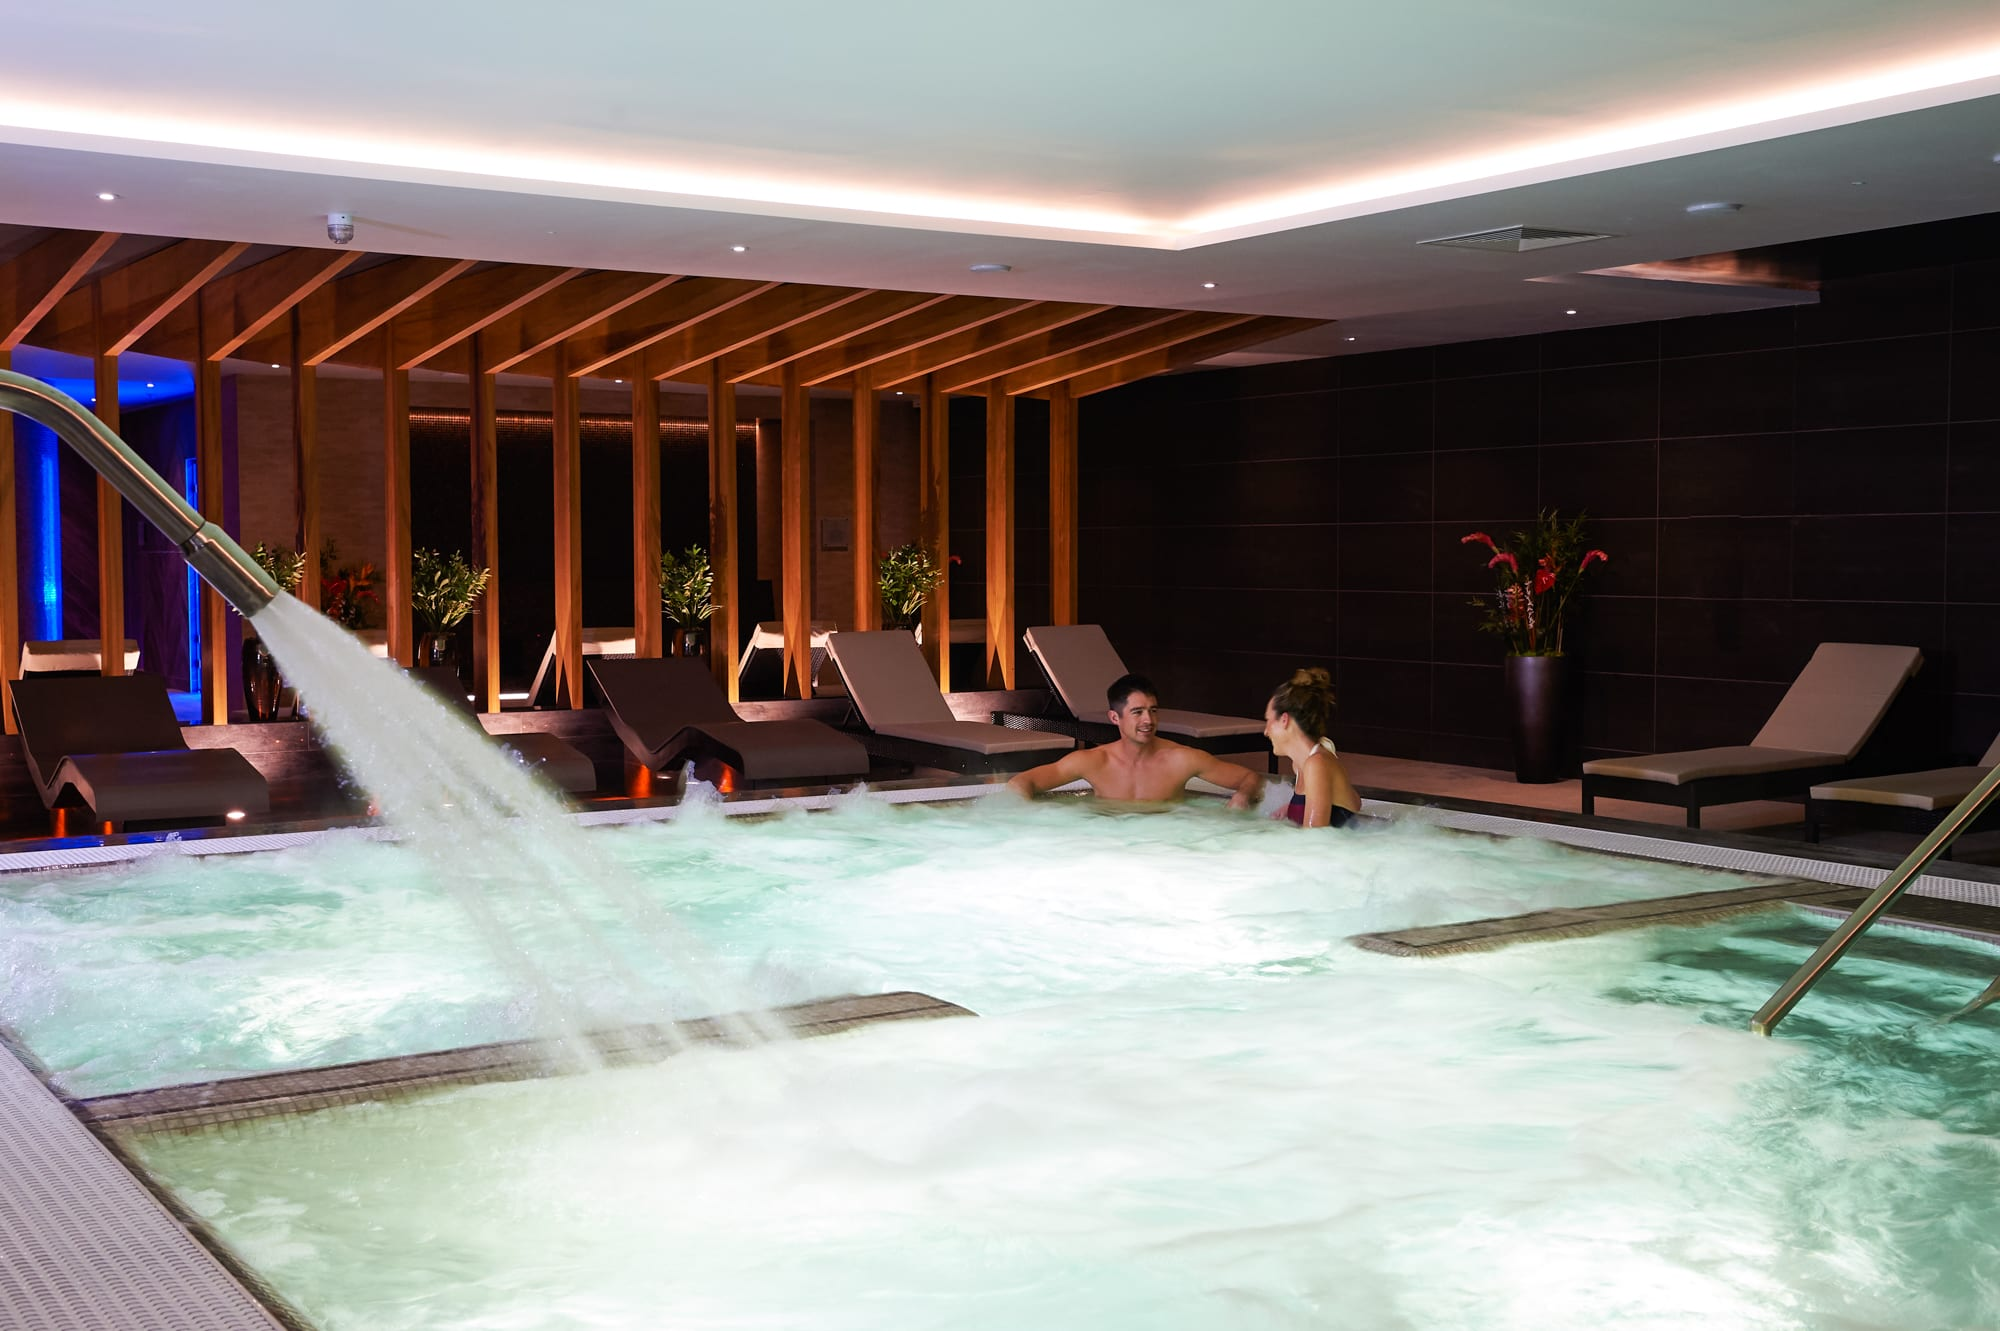 Image of people relaxing in spa at David Lloyd Clubs